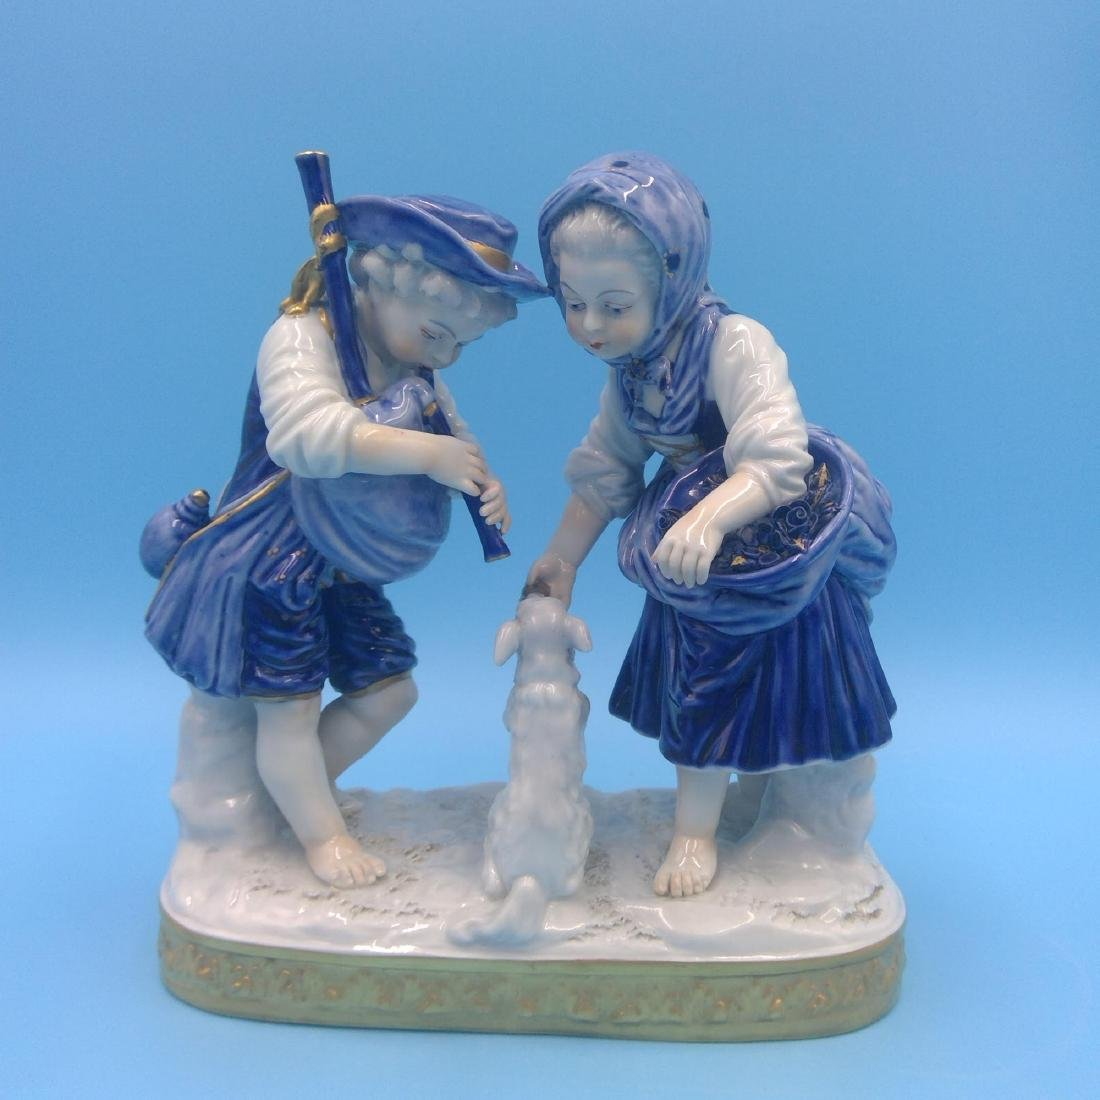 GROUP OF 4 ANTIQUE GERMAN PORCELAIN FIGURINES - 2